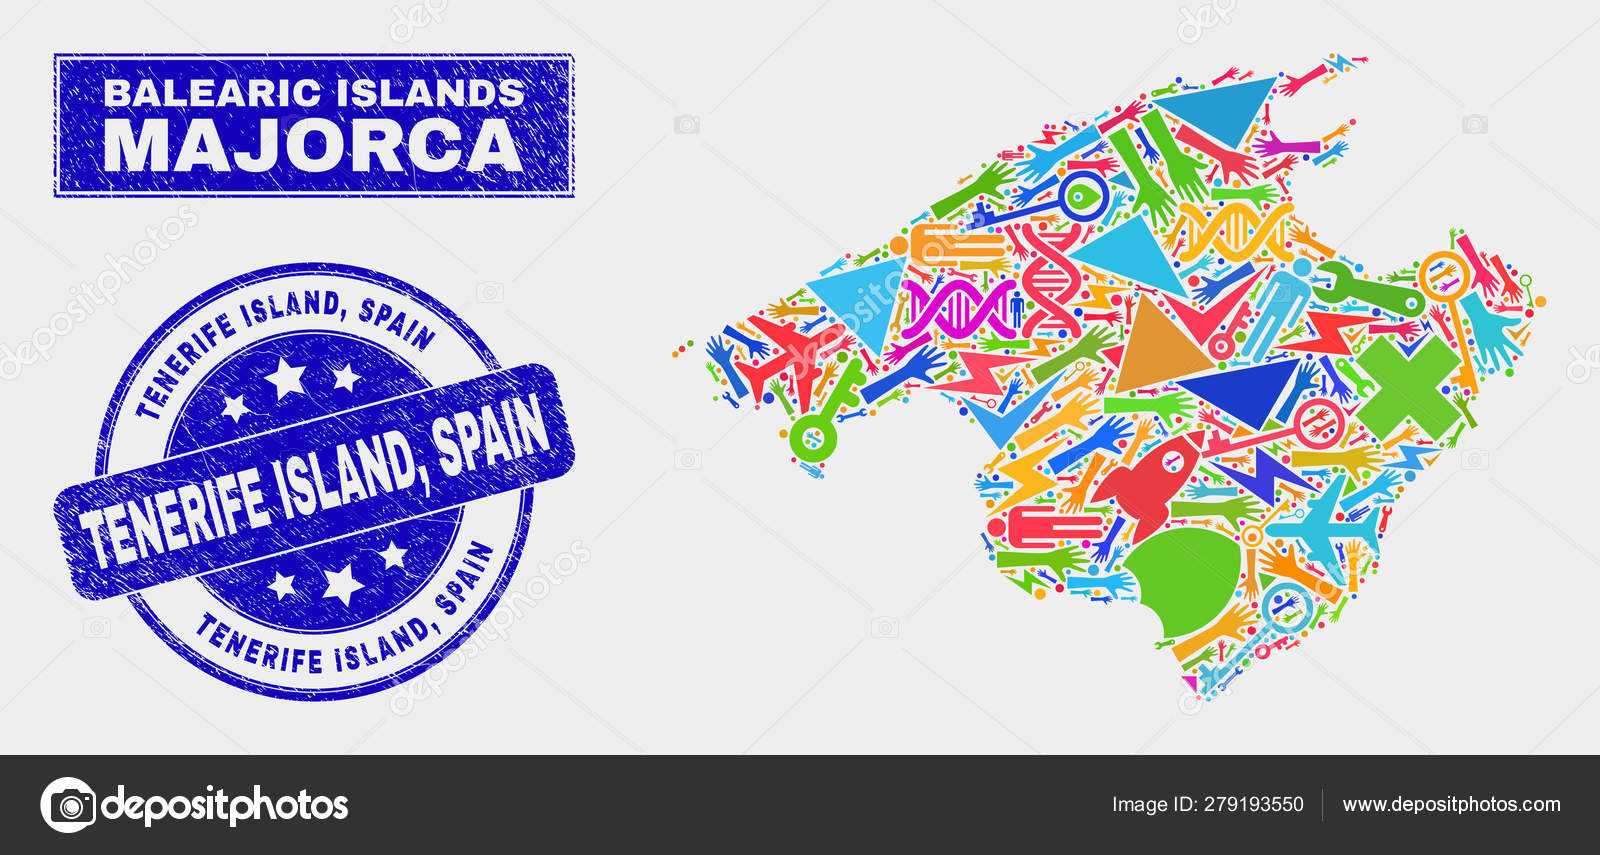 Map Of Spain Tenerife.Collage Technology Majorca Map And Distress Tenerife Island Spain